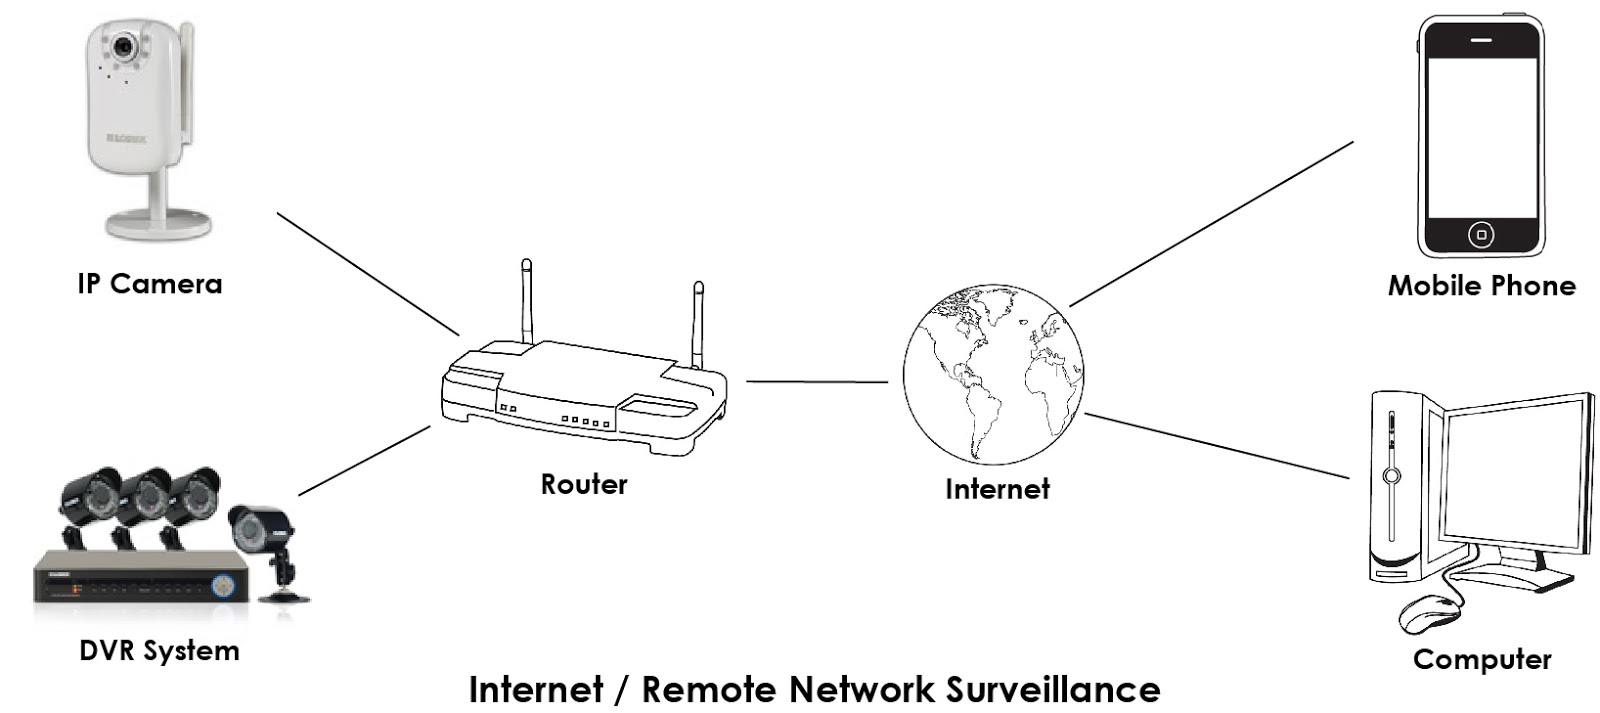 How to Remote Camer Security over the internet or network